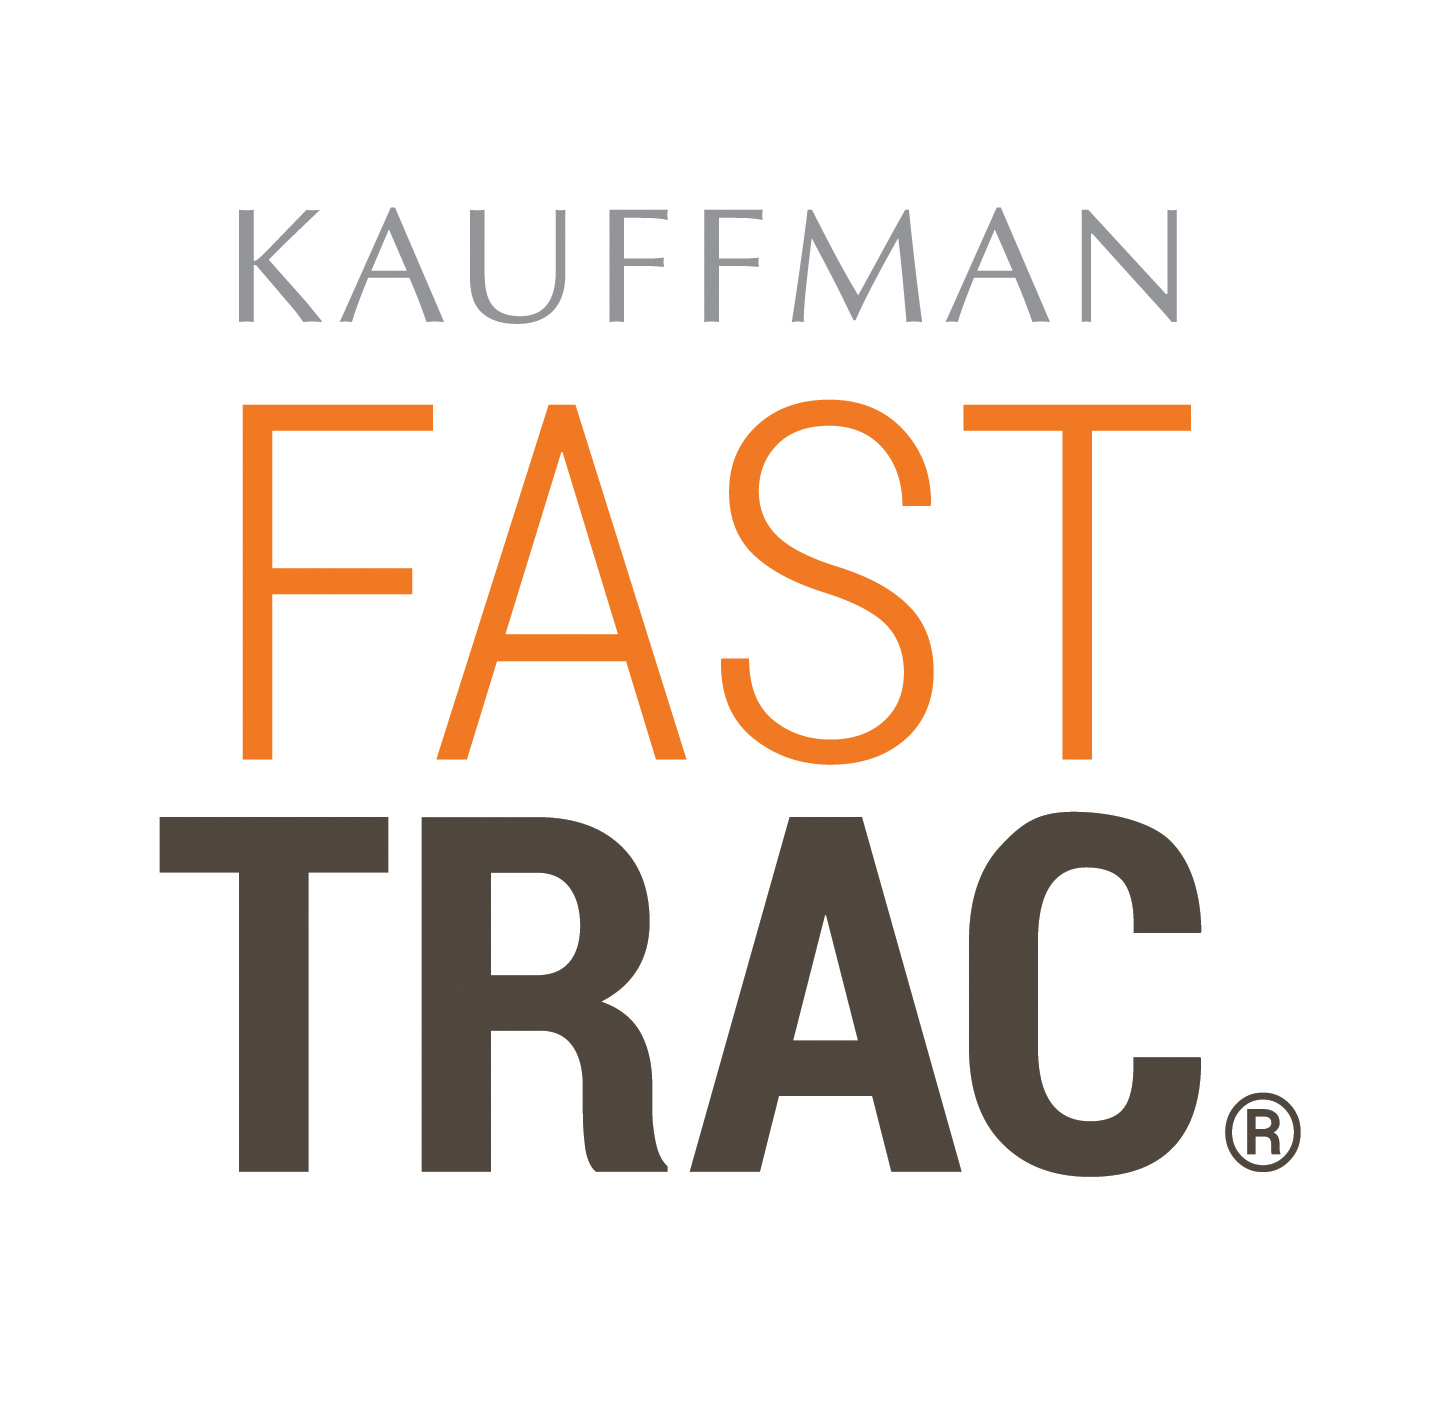 The idea. That's where it starts. - Now what do you do with the idea? You could start a business — but could you start a viable business? Find the answer with Kauffman FastTrac®.Kauffman FastTrac® is a flexible course with a solid framework to support you as you start a business and begin your journey to success.